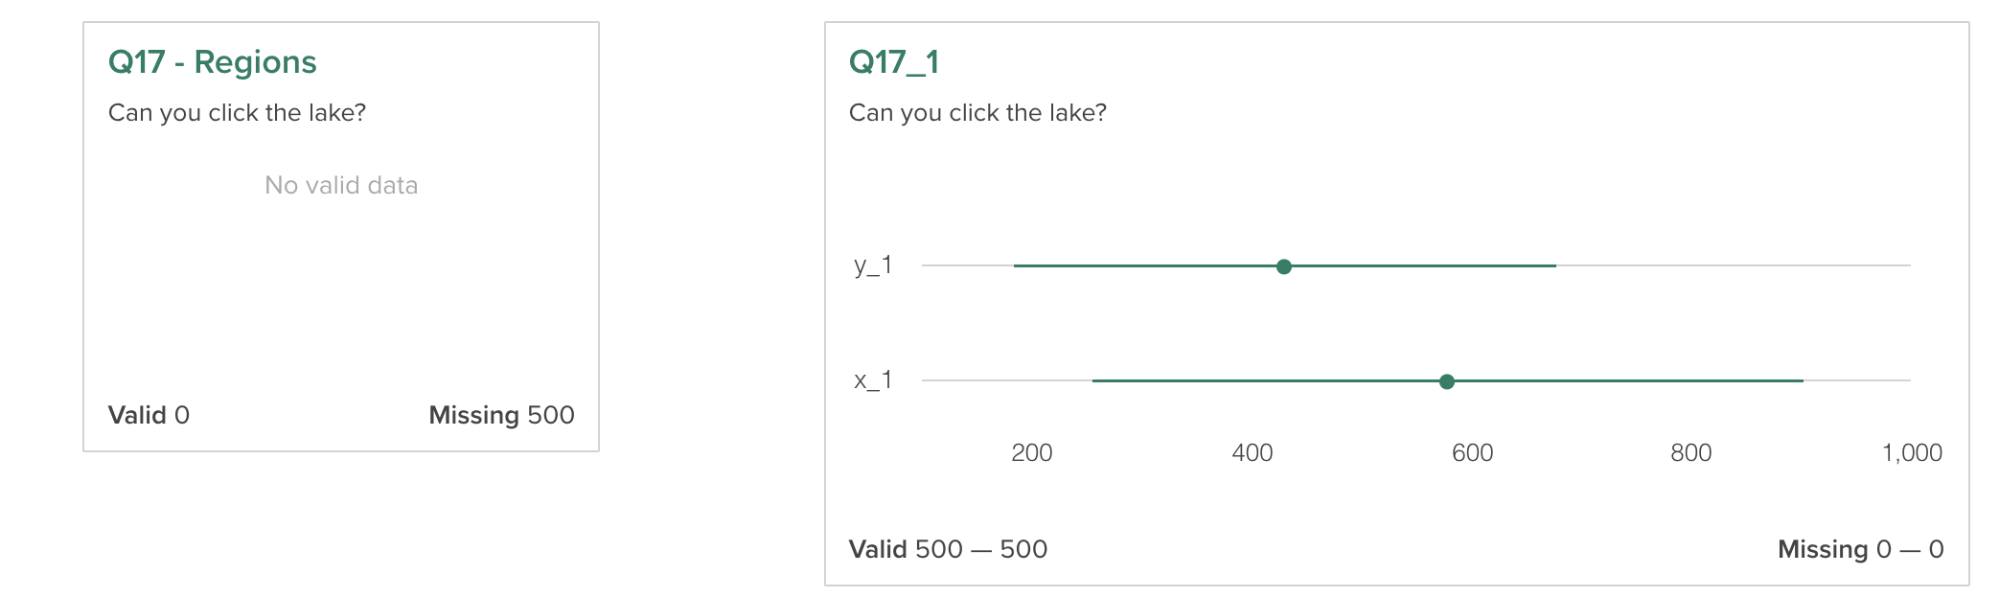 qualtrics-survey-mapping_35.png